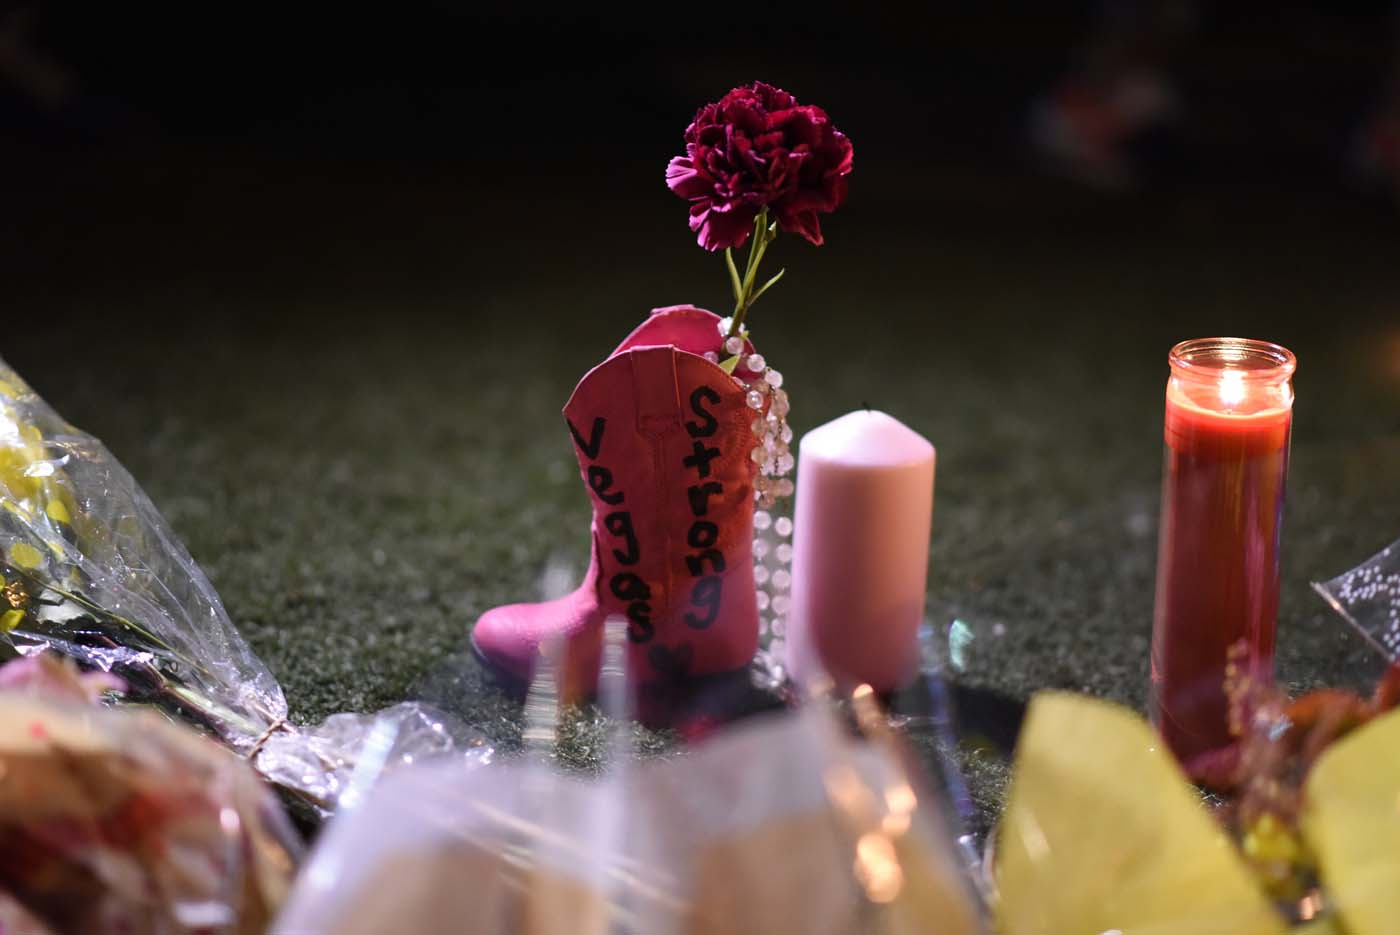 Flowers are placed into a pink boot at a makeshift memorial are seen near the Mandalay Hotel on the Las Vegas Strip, in Las Vegas, Nevada on October 3, 2017, after a gunman killed 58 people and wounded more than 500 others, before taking his own life, when he opened fire from a hotel on a country music festival. Police said the gunman, a 64-year-old local resident named as Stephen Paddock, had been killed after a SWAT team responded to reports of multiple gunfire from the 32nd floor of the Mandalay Bay, a hotel-casino next to the concert venue. / AFP PHOTO / Robyn Beck